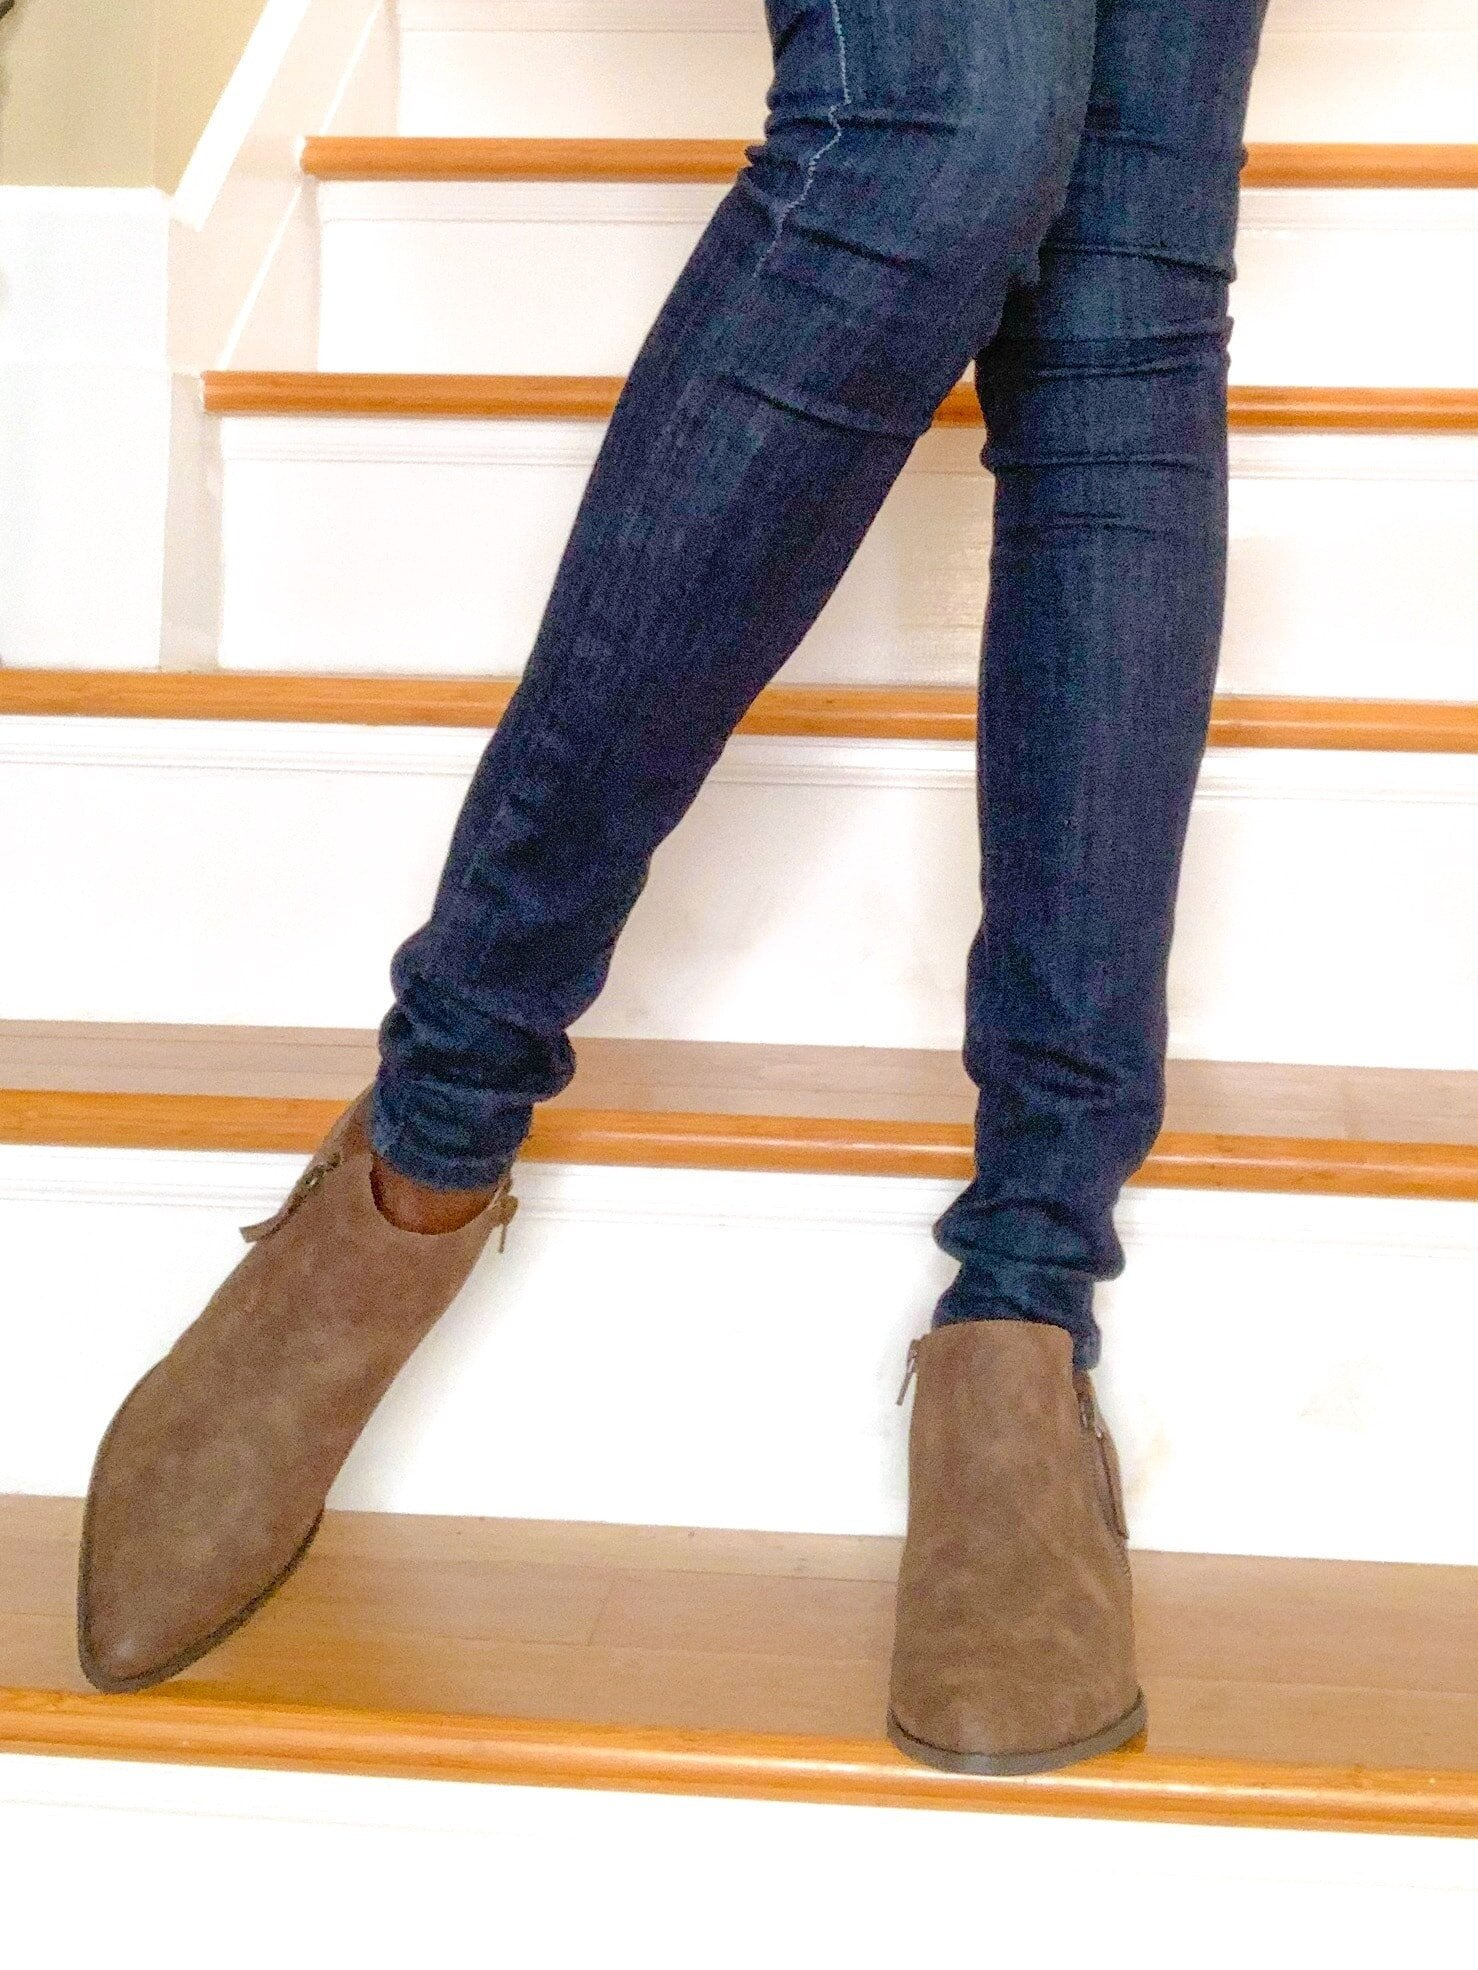 cowboy boots and skinny jeans-min.jpg